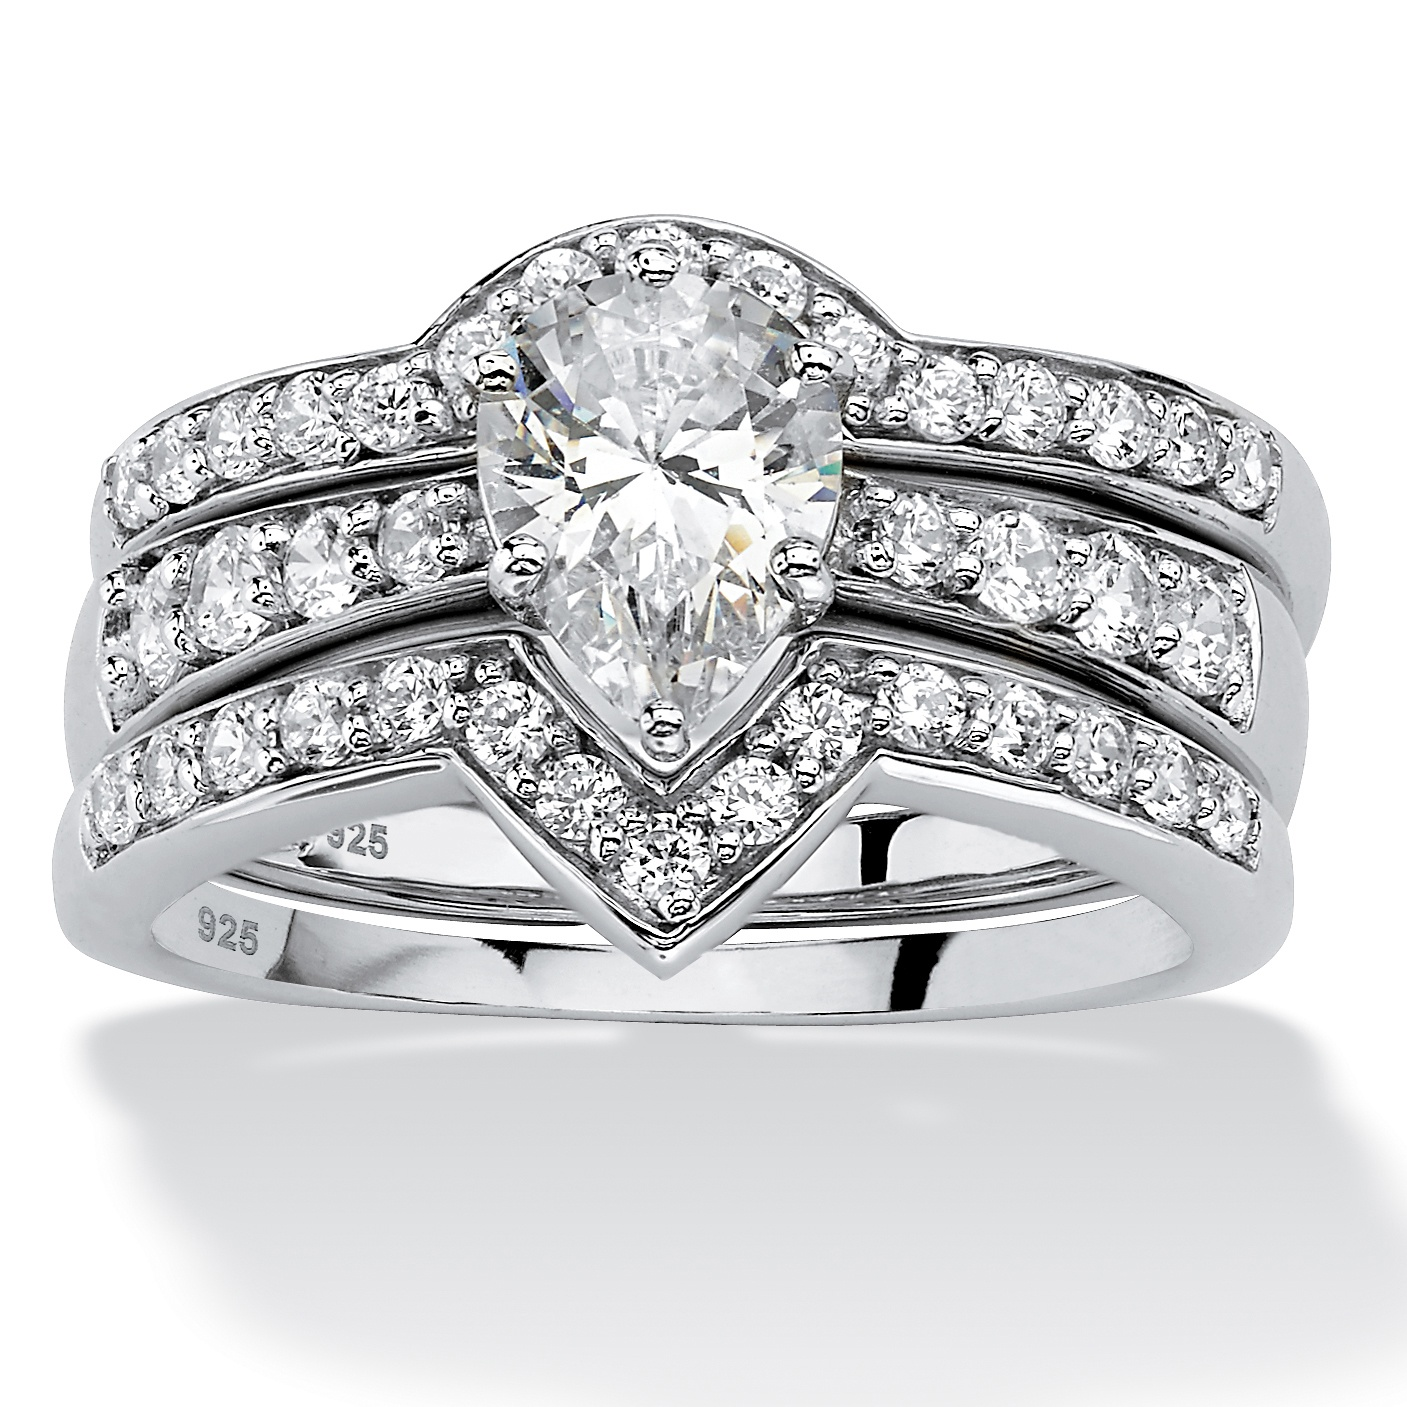 3 Piece 1.94 TCW Pear-Cut Cubic Zirconia Bridal Ring Set in Platinum over Sterling Silver by PalmBeach Jewelry